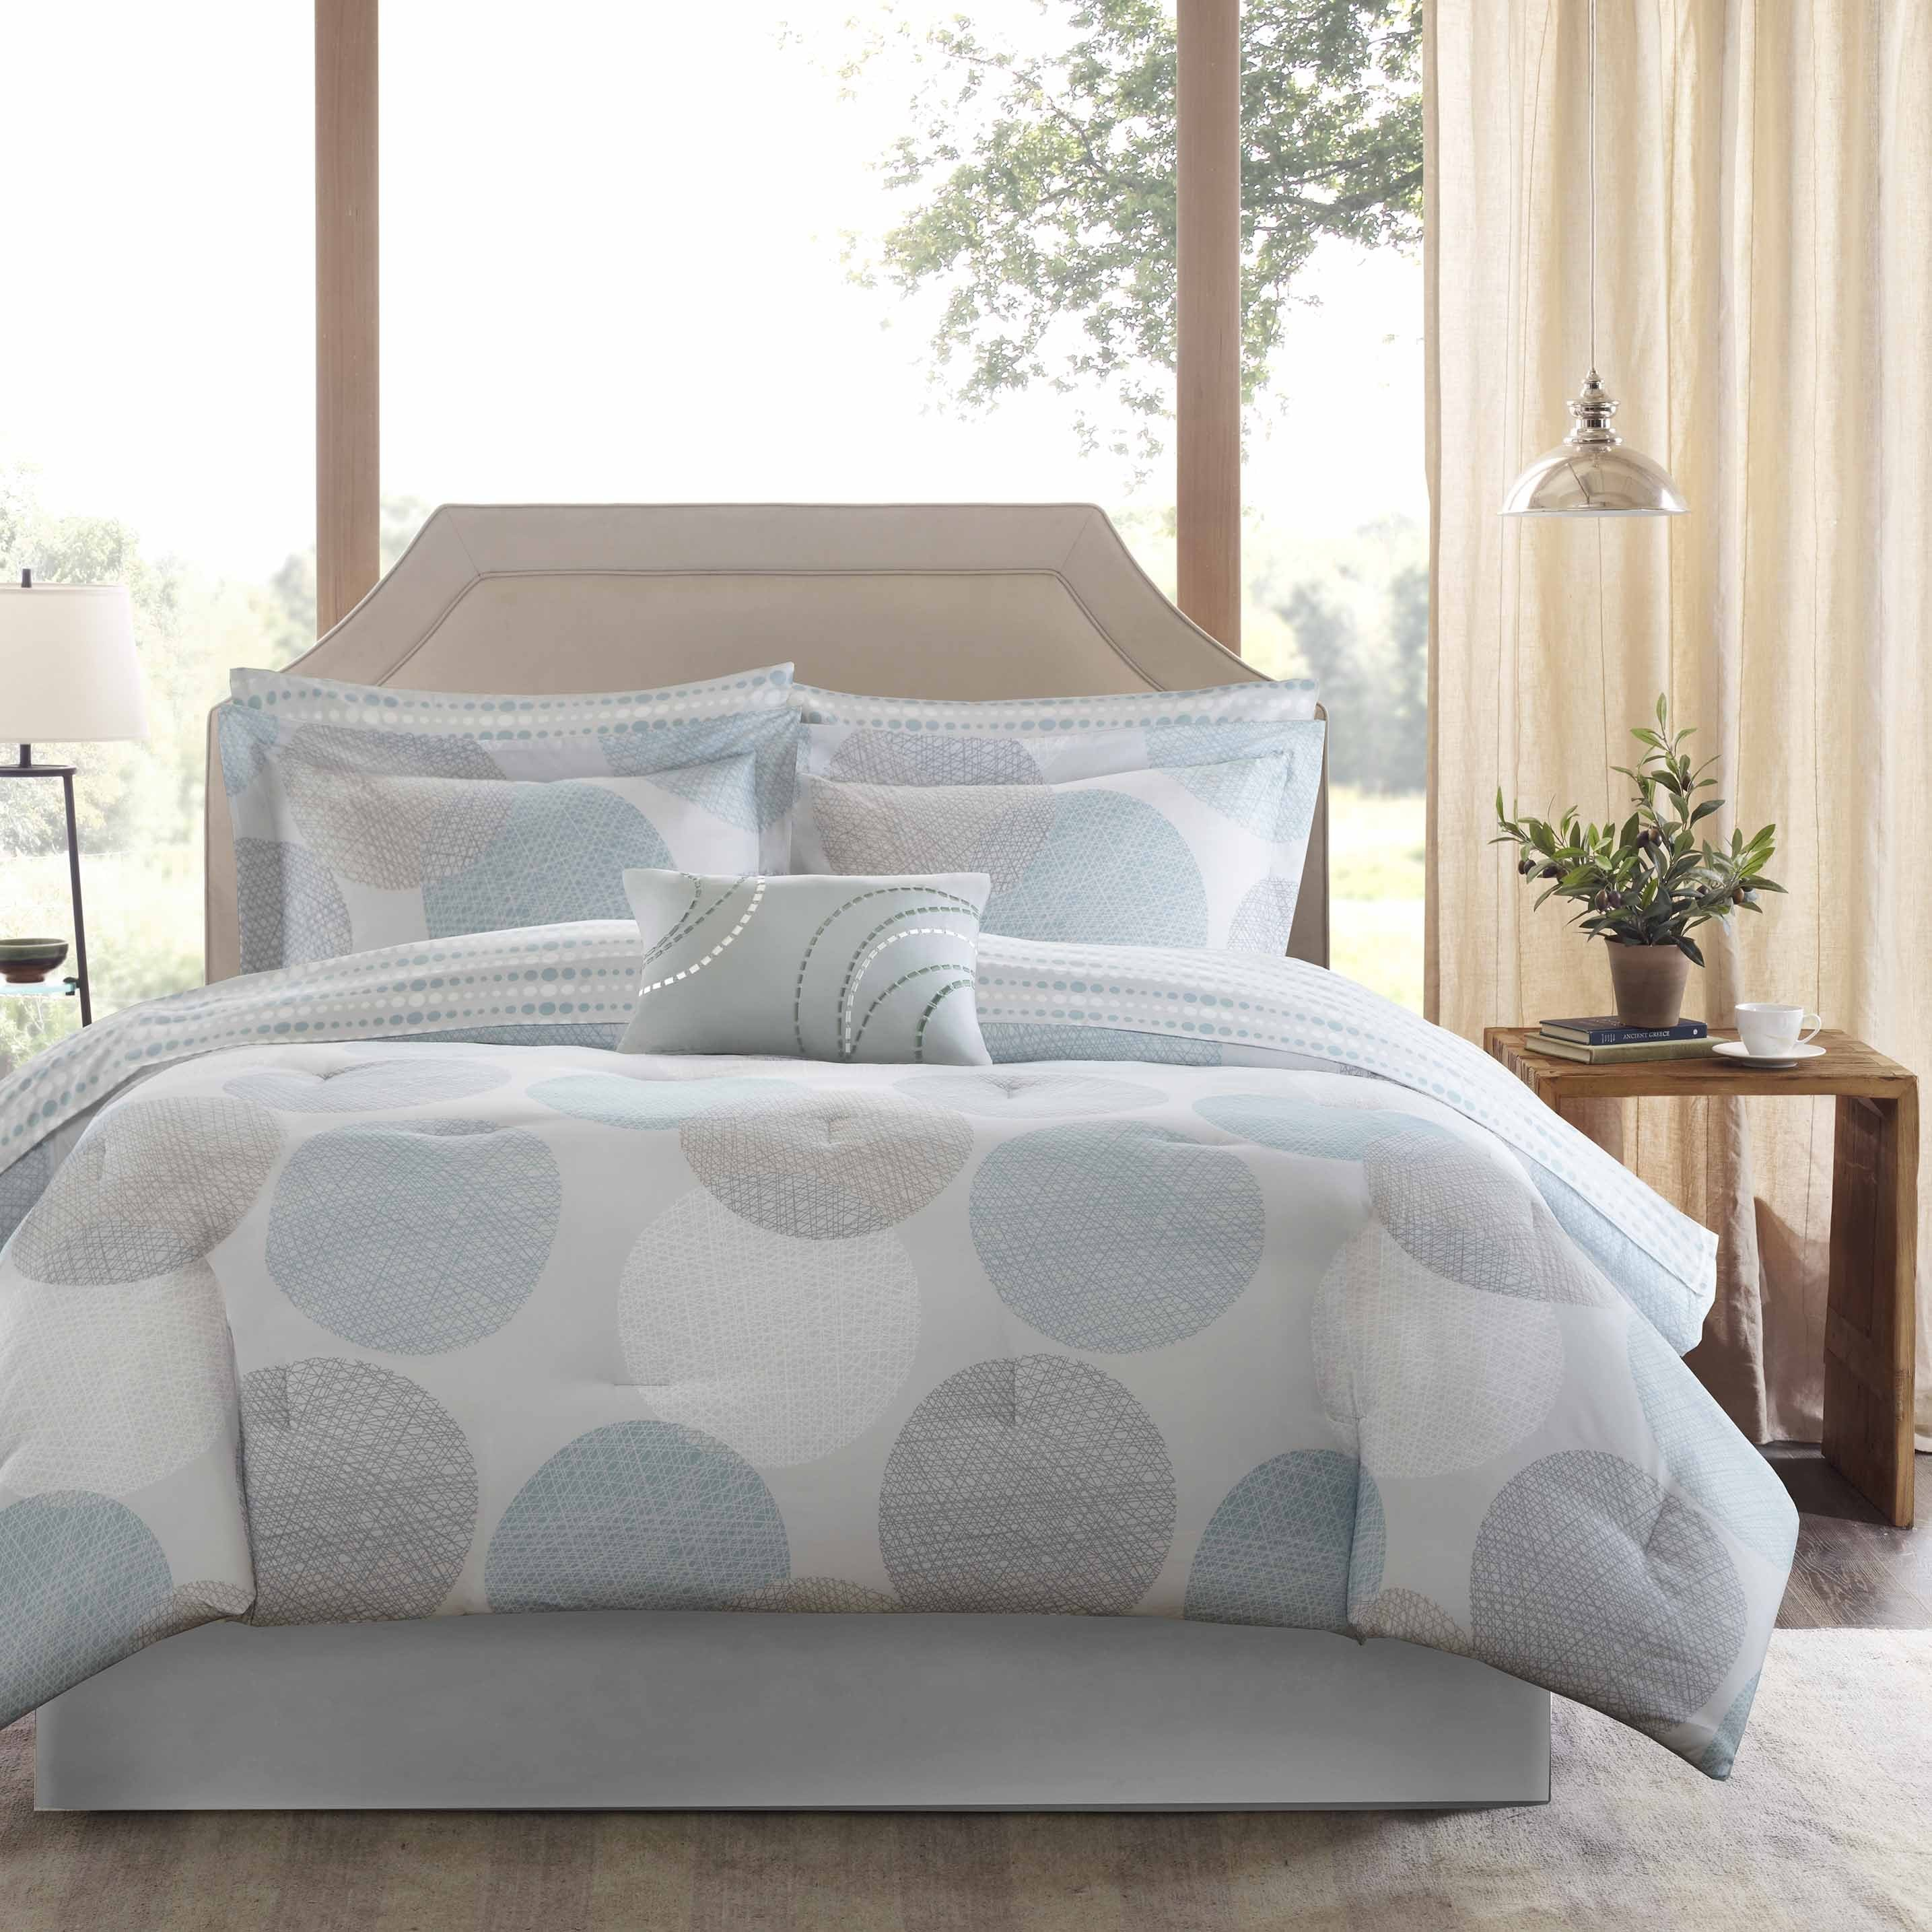 bath set bedding scene product over bed city piper free com duvet orders grey on overstock shipping cover